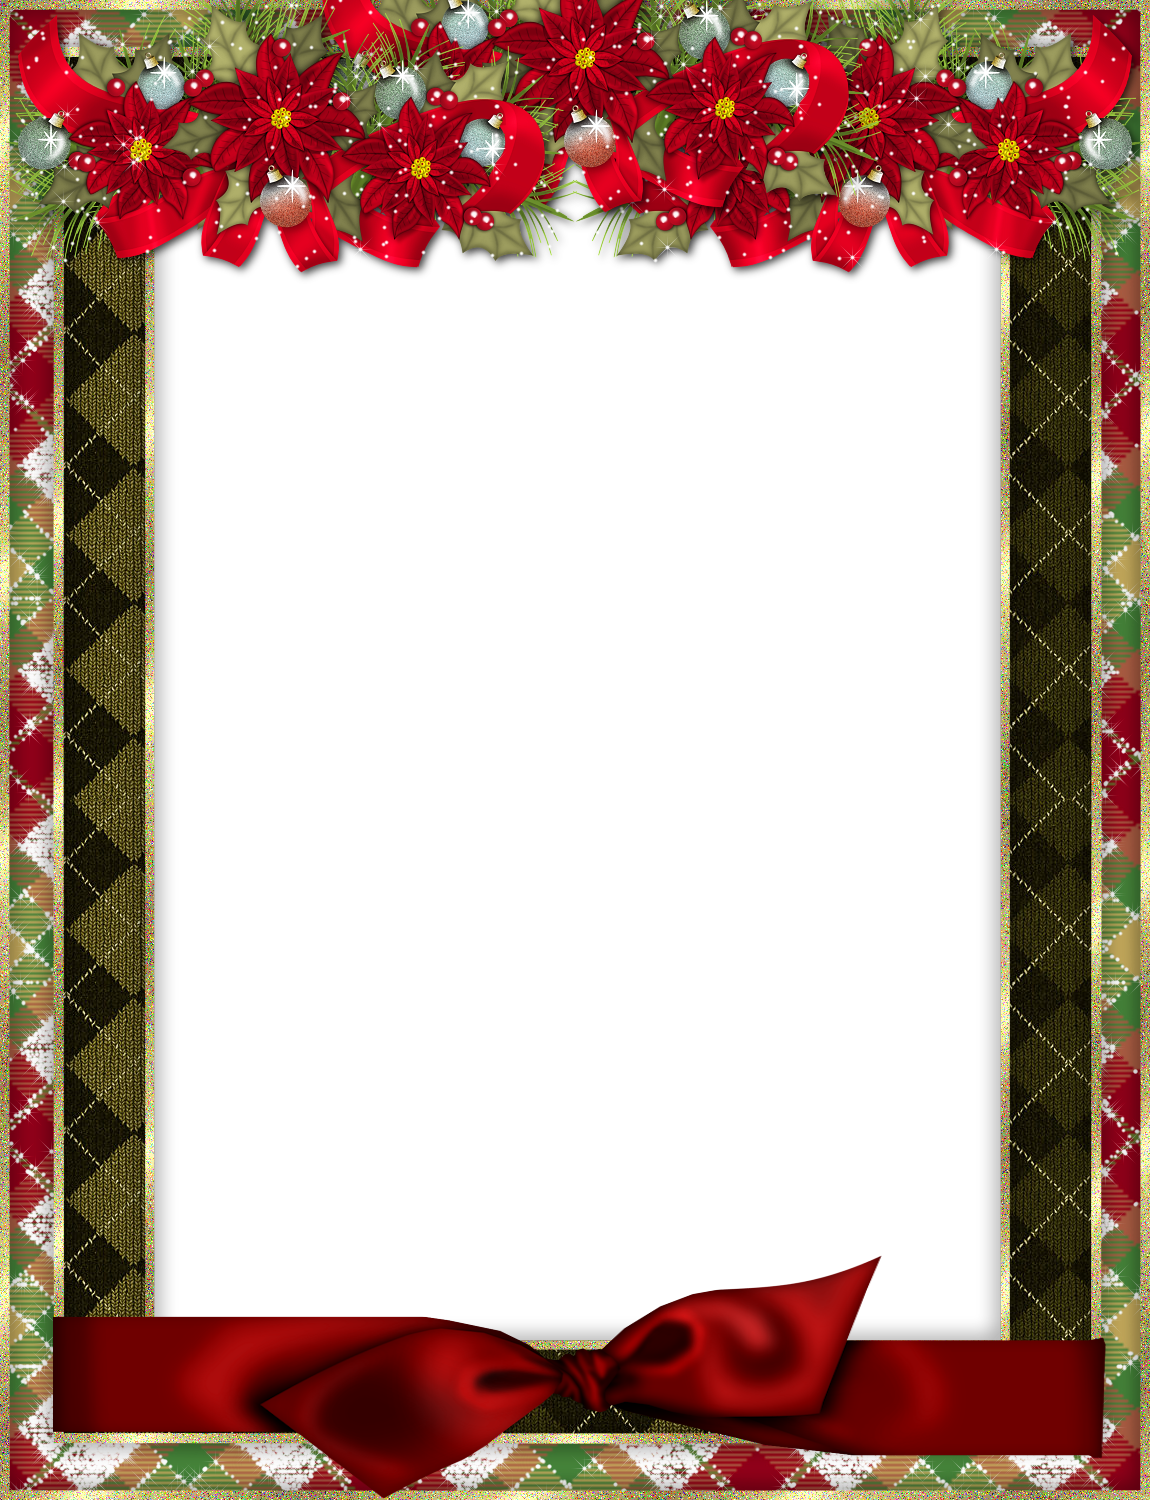 Christmas Photo Frame with Red Bow and Poinsettia Gallery 1150x1500